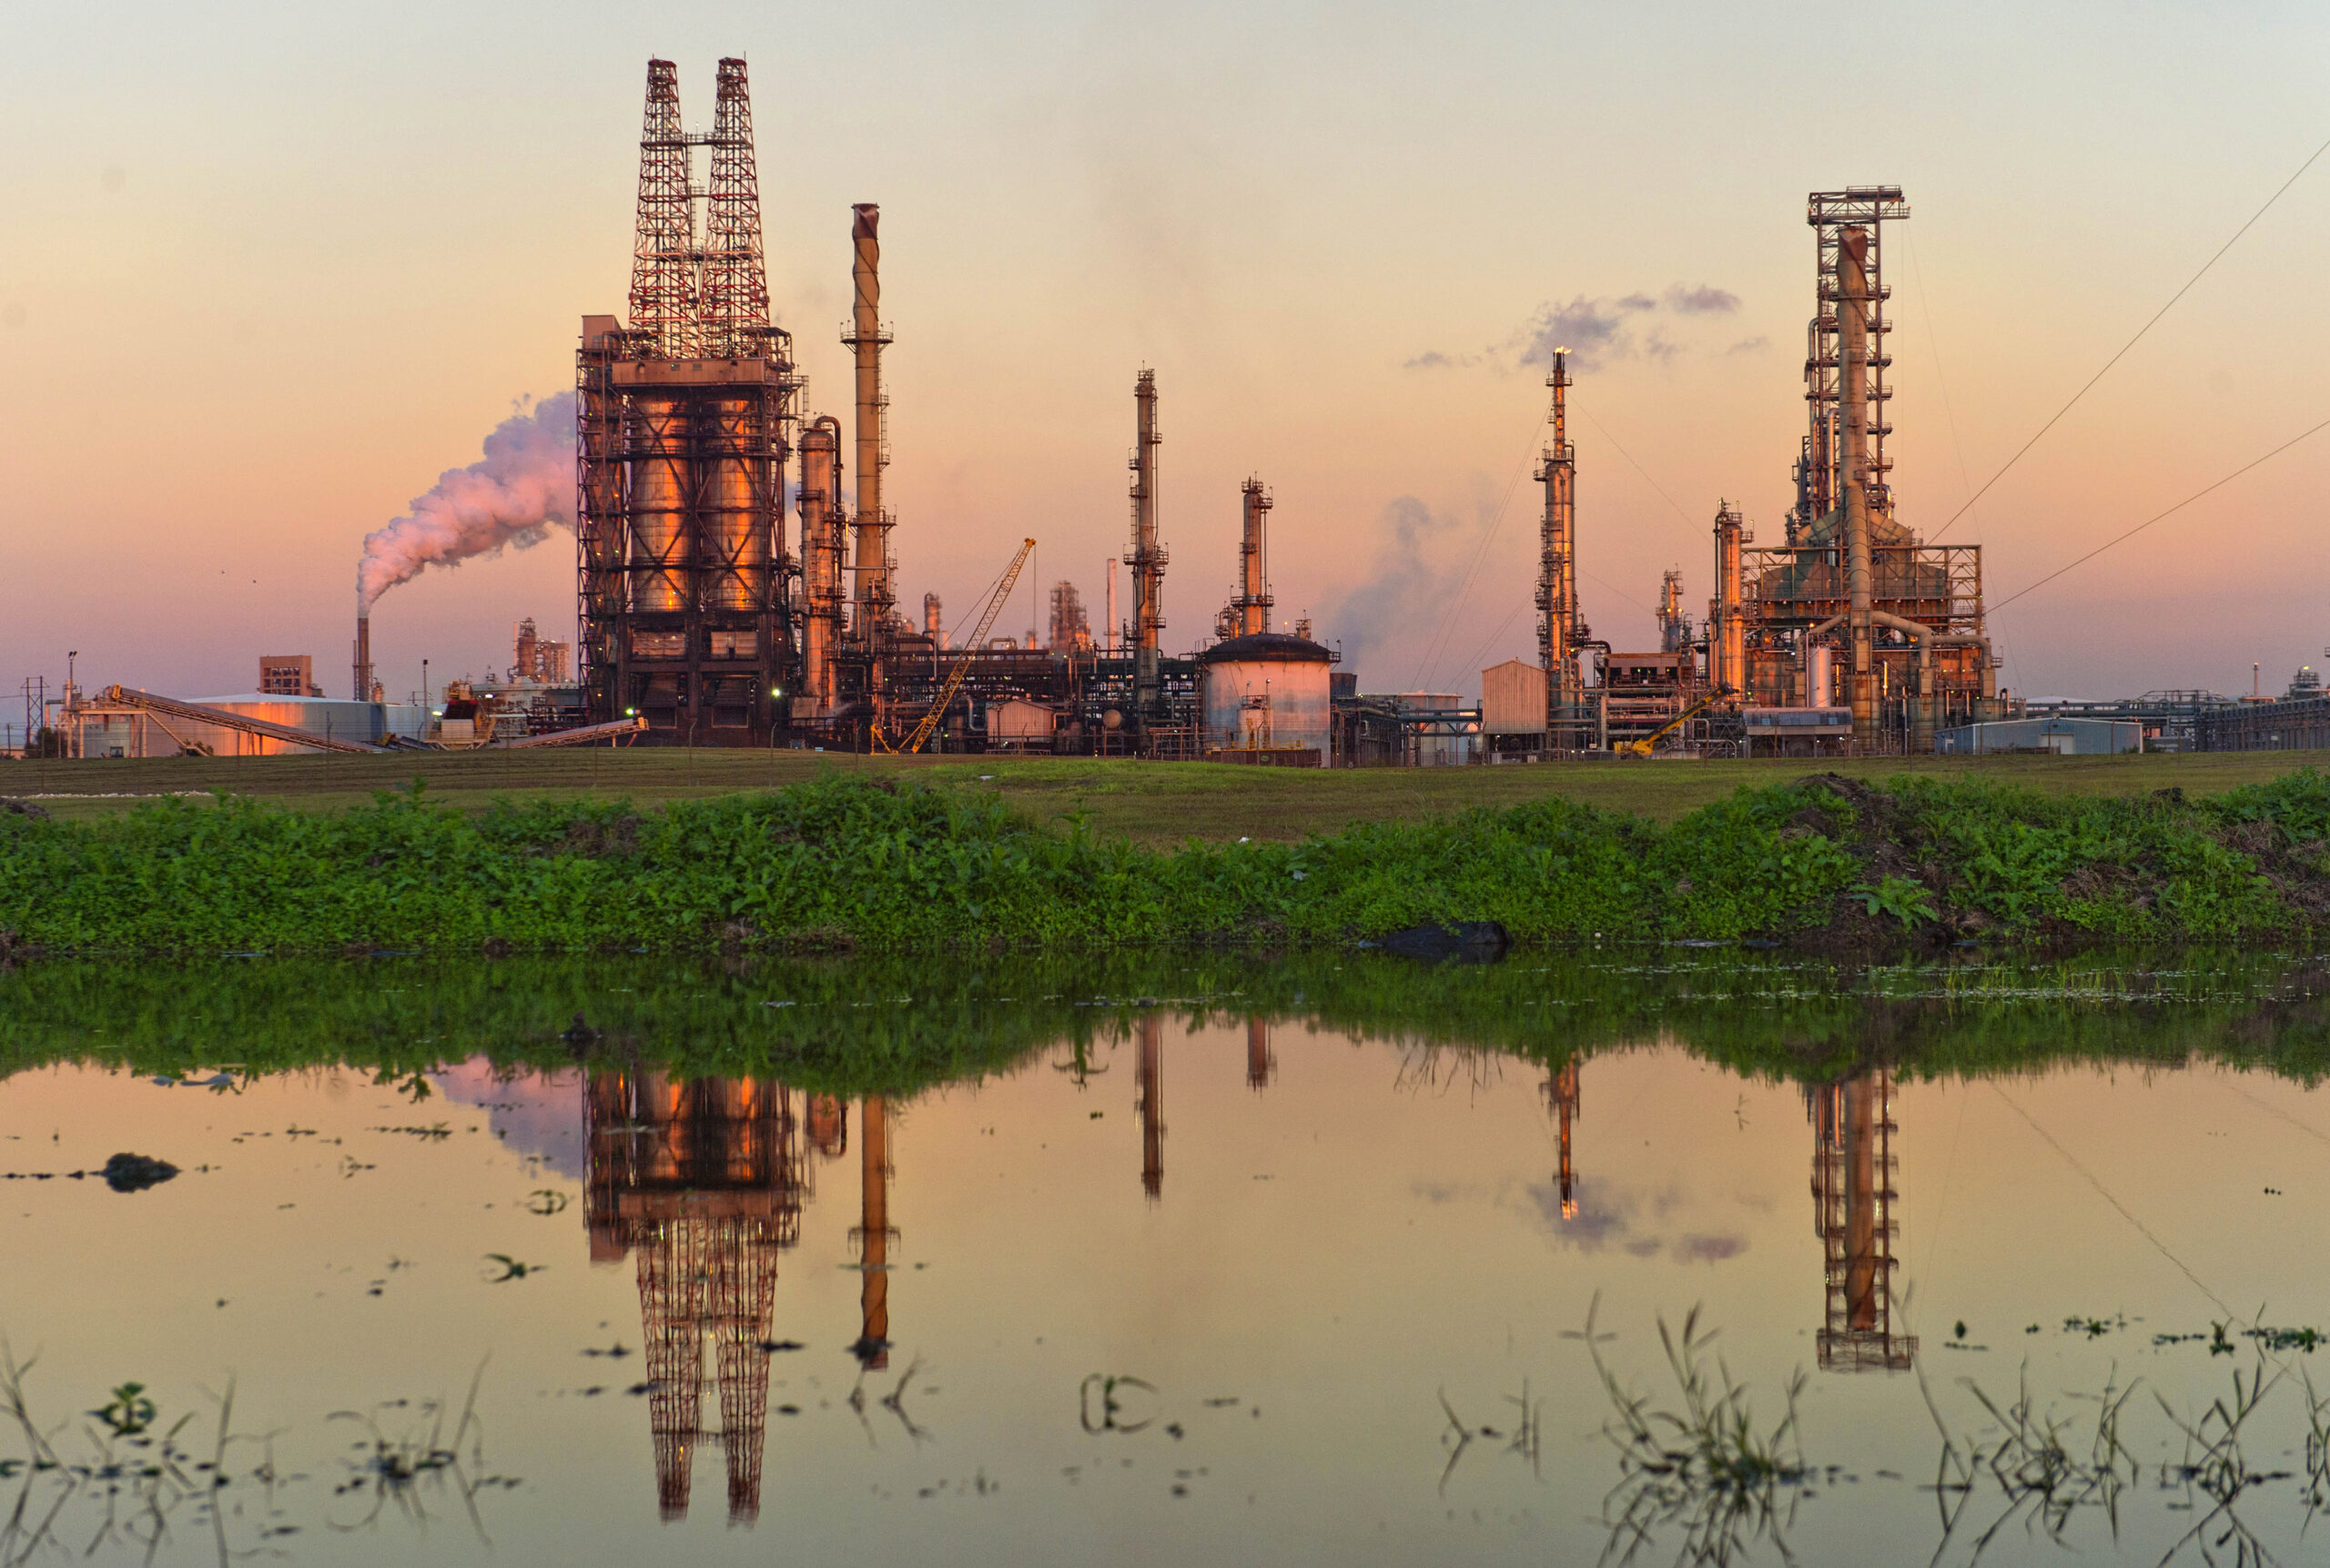 A Citgo oil refinery stands in Corpus Christi, Texas, on Thursday, Jan. 7, 2016. Credit: Eddie Seal/Bloomberg via Getty Images